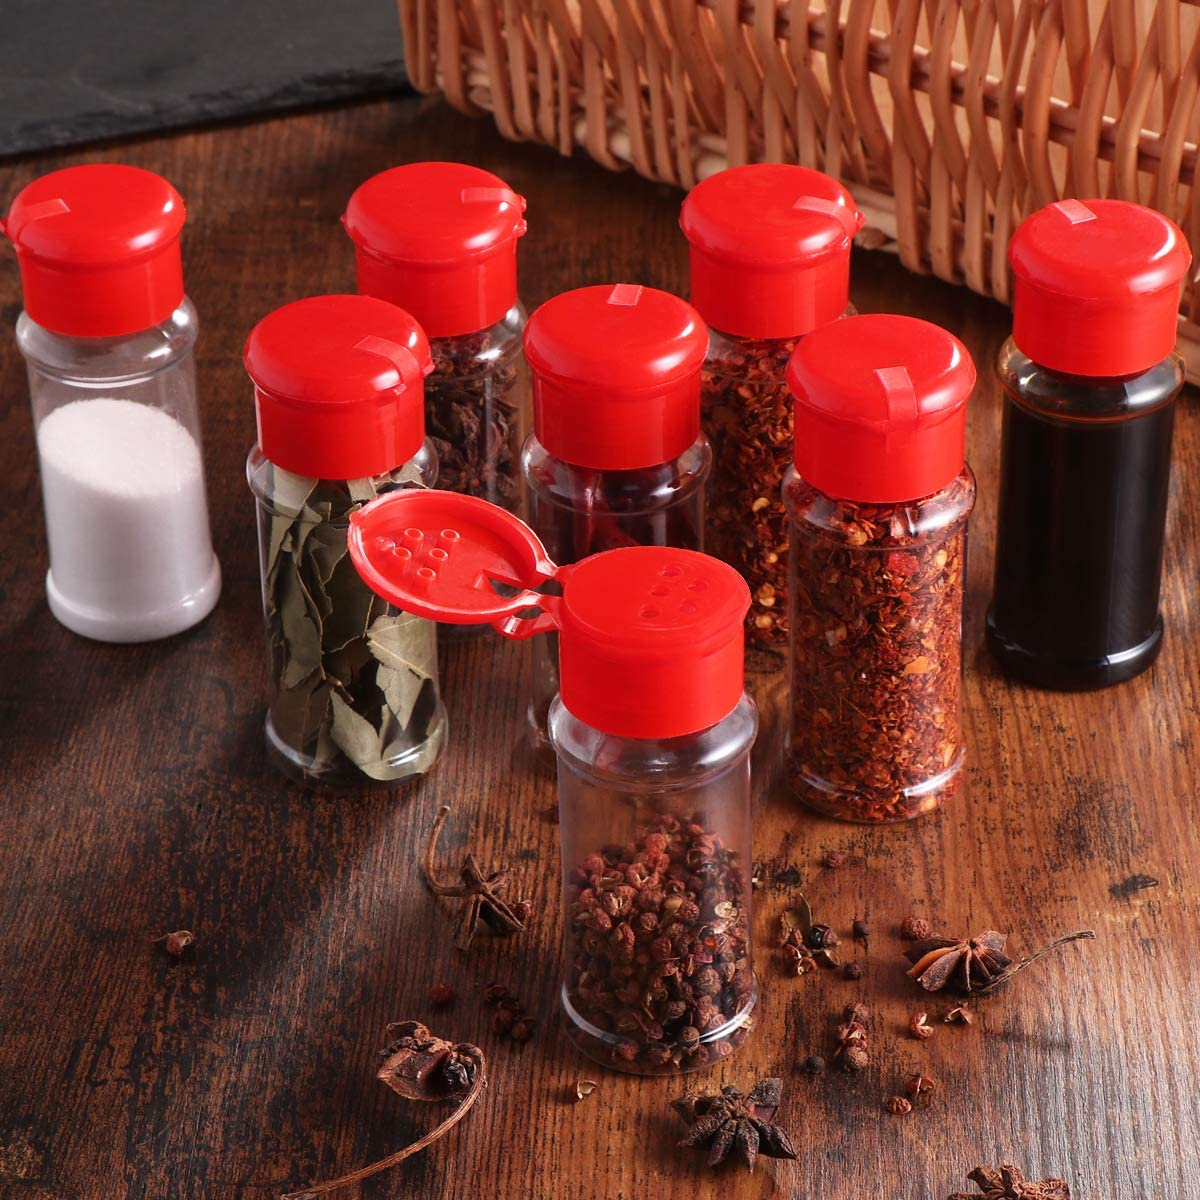 Herbs and Powders BESTONZON Plastic Spice Jar 12Pcs Salt Pepper Shakers Seasoning Jar Barbecue Condiment Jar Bottles Cruet Container,Perfect for Storing Spice Red